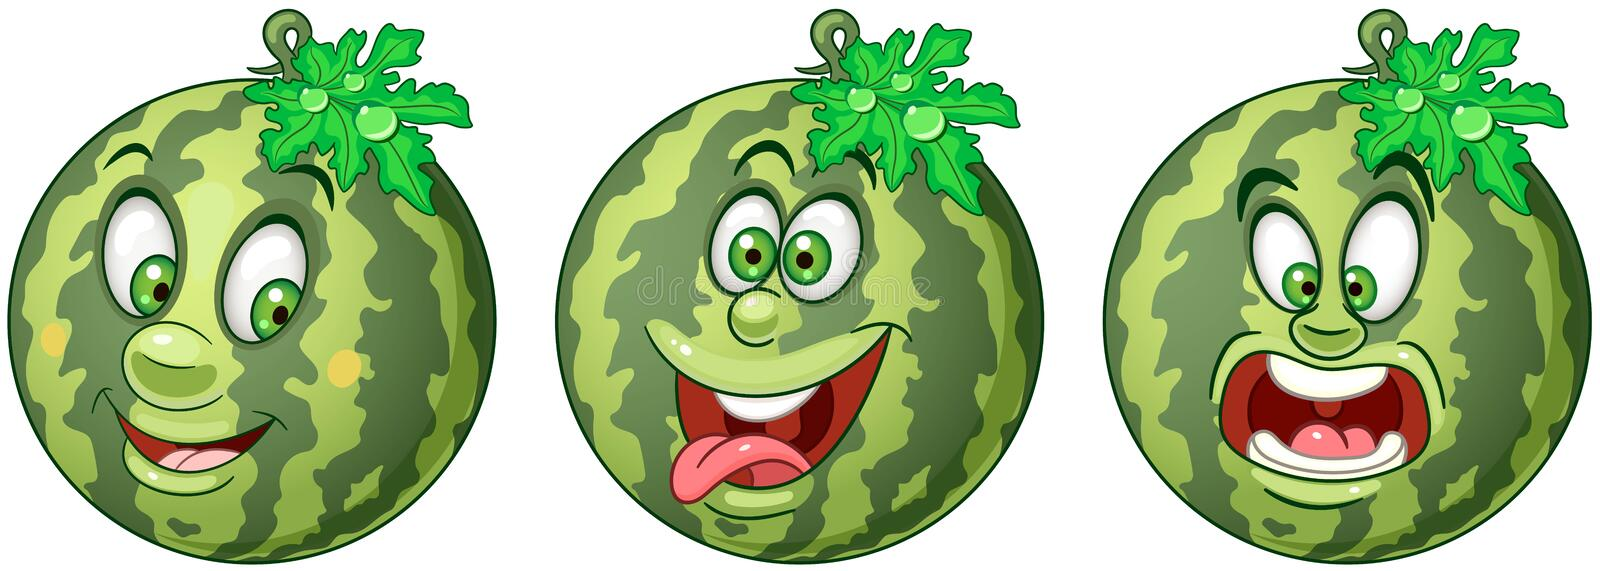 Watermelon. Fruit Food concept royalty free stock photography